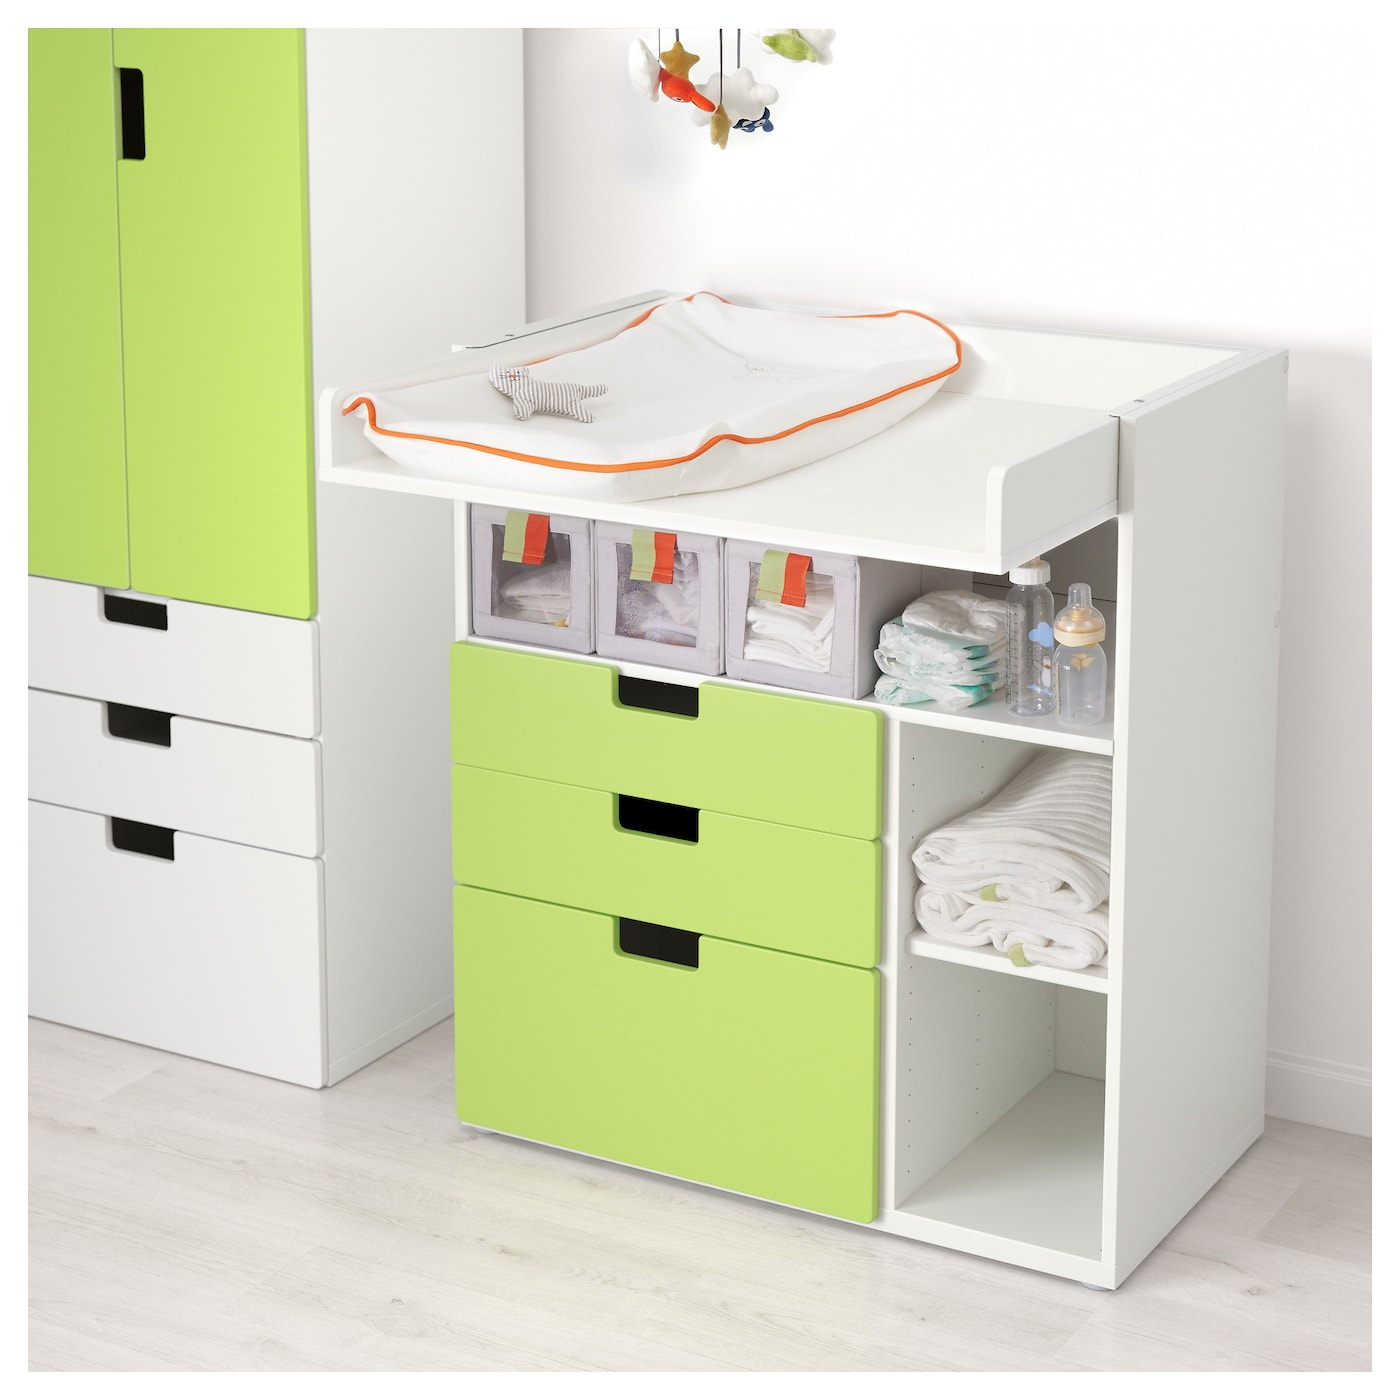 IKEA STUVA changing table with 3 drawers